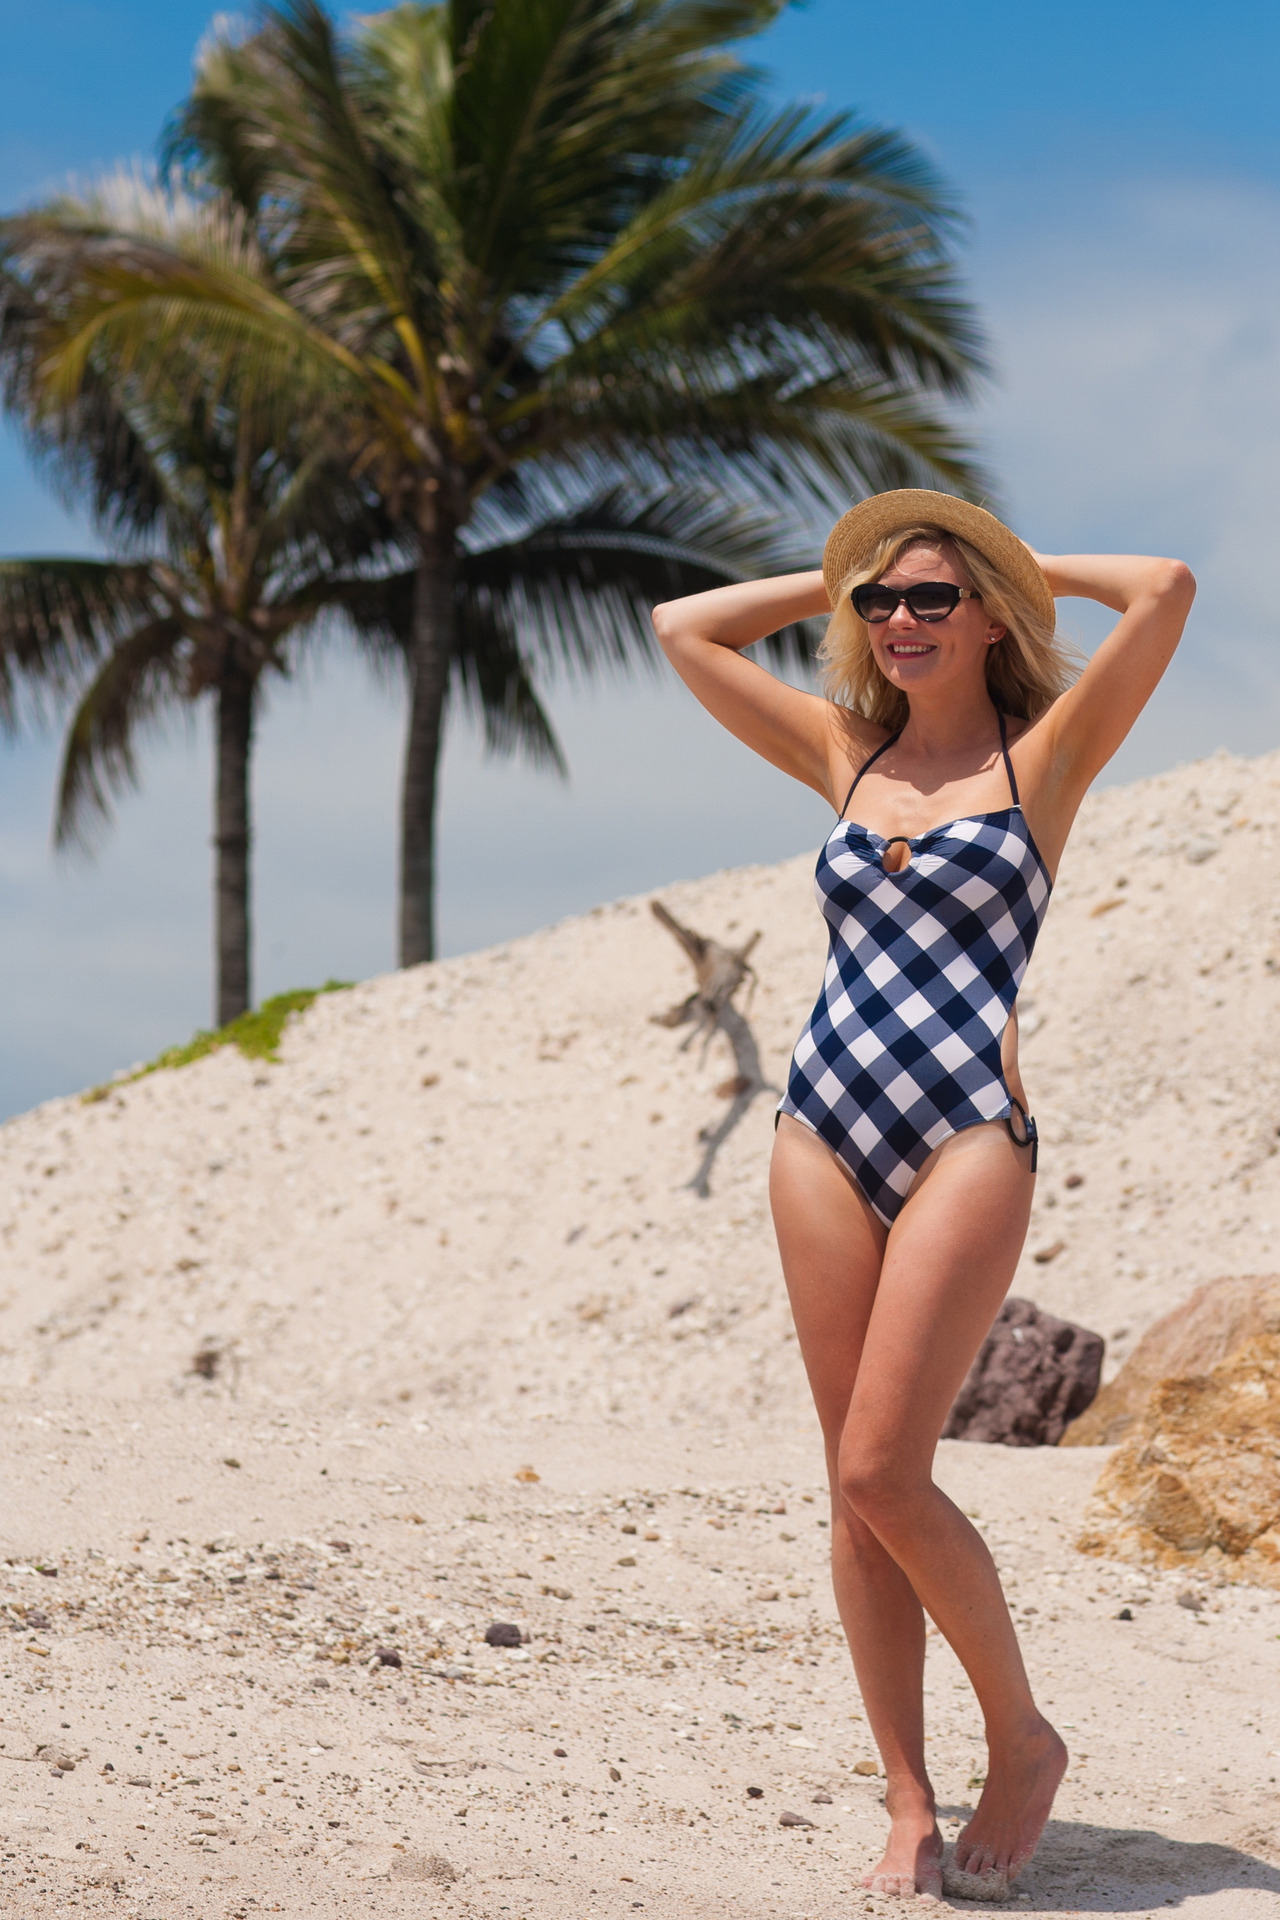 Finally found an ID on this swimsuit that Kirsten Dunst is wearing here - it's from Eres Sping/Summer 2012 collection.